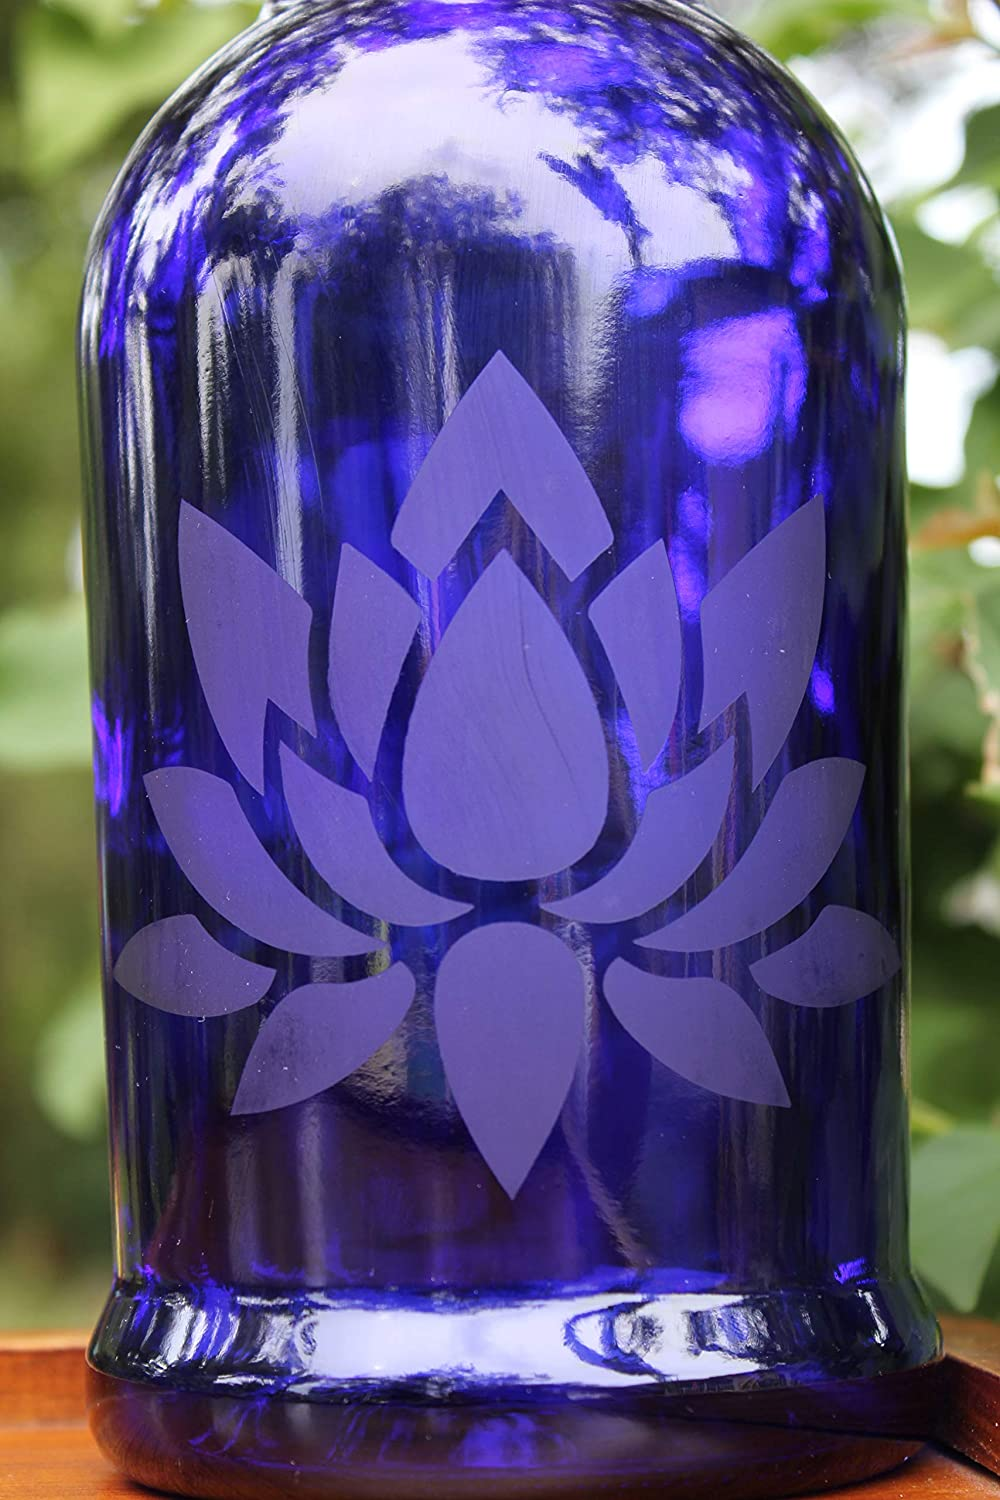 cc48ecb80a93 32oz. Lotus Flower Etched Cobalt Blue Glass Bottle With Swing-Top ...